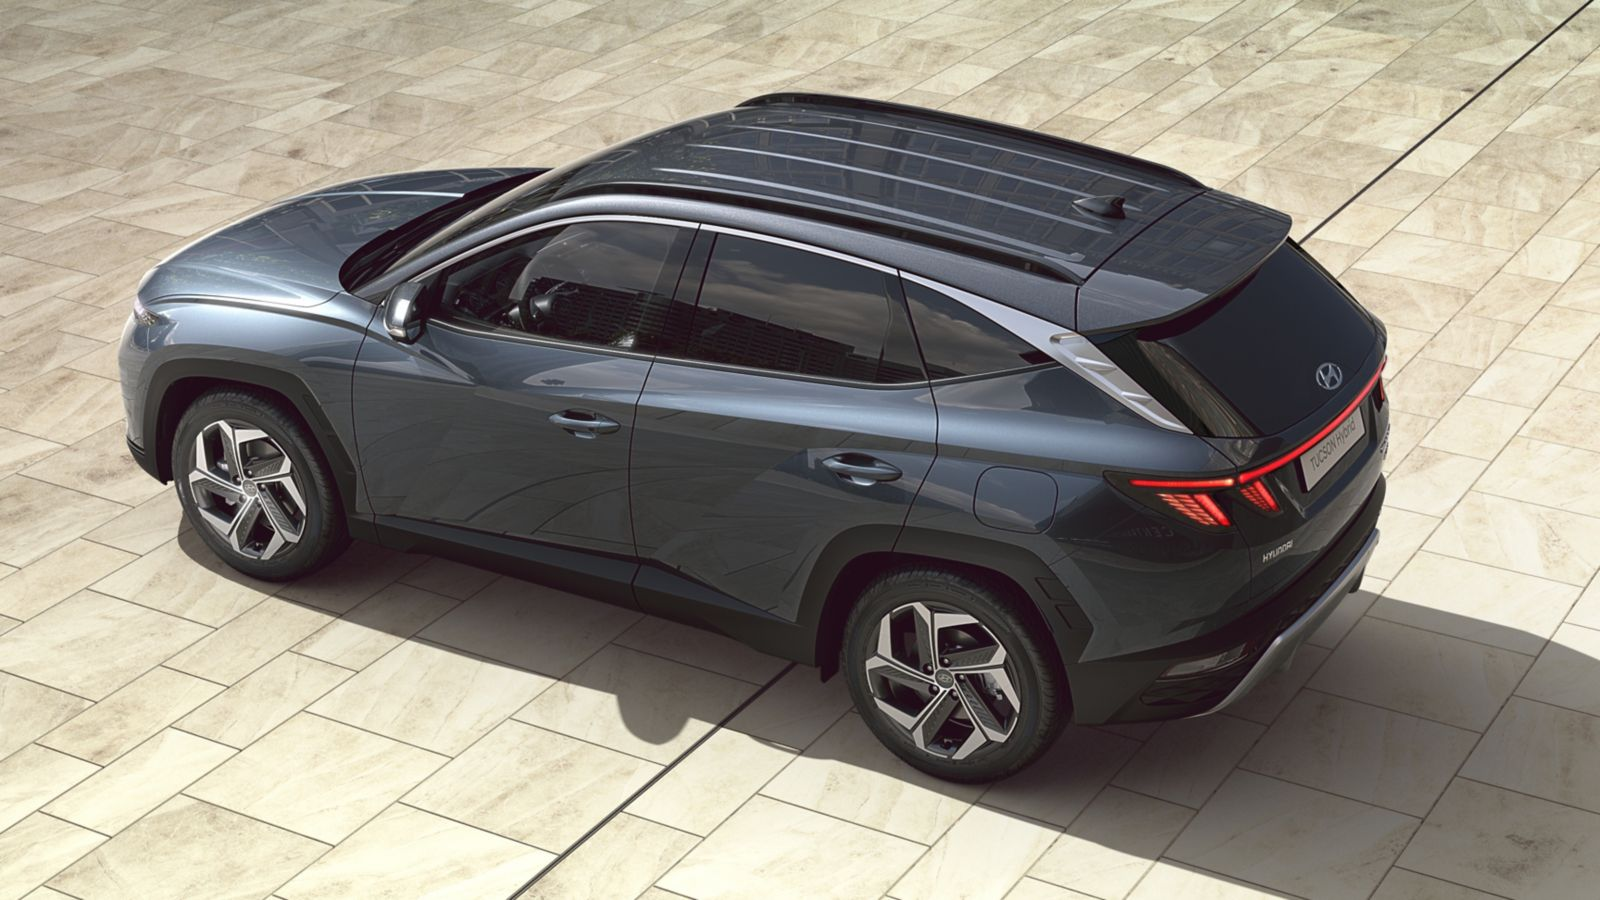 The all-new Hyundai Tucson compact SUV pictured from the top.